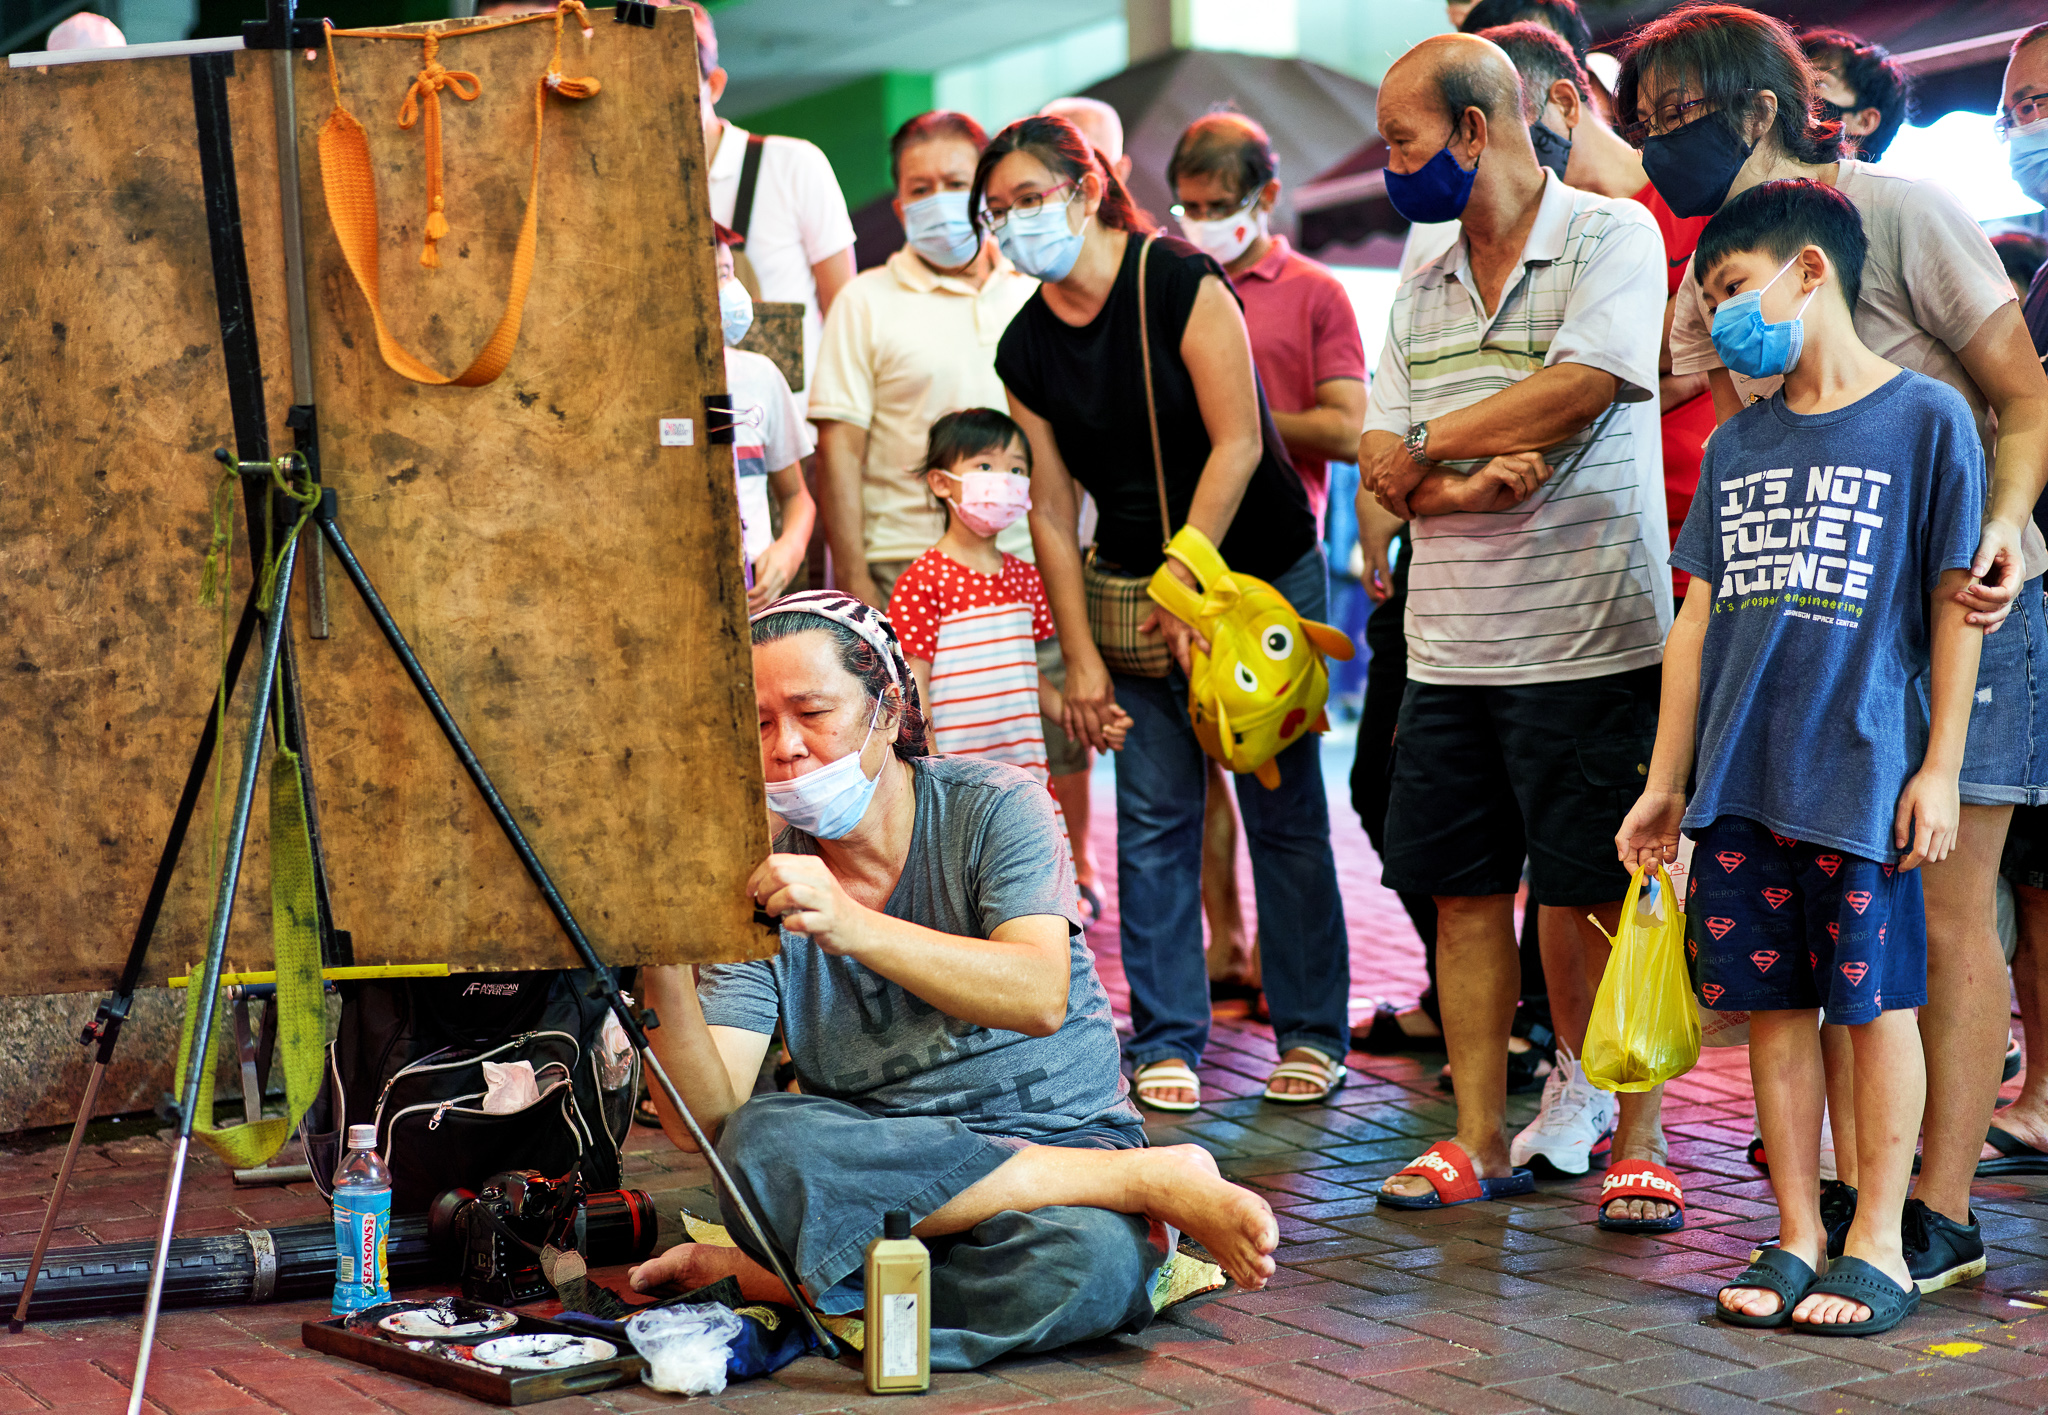 A painter immersed at his painting with curious onlookers around, China Town, Singapore